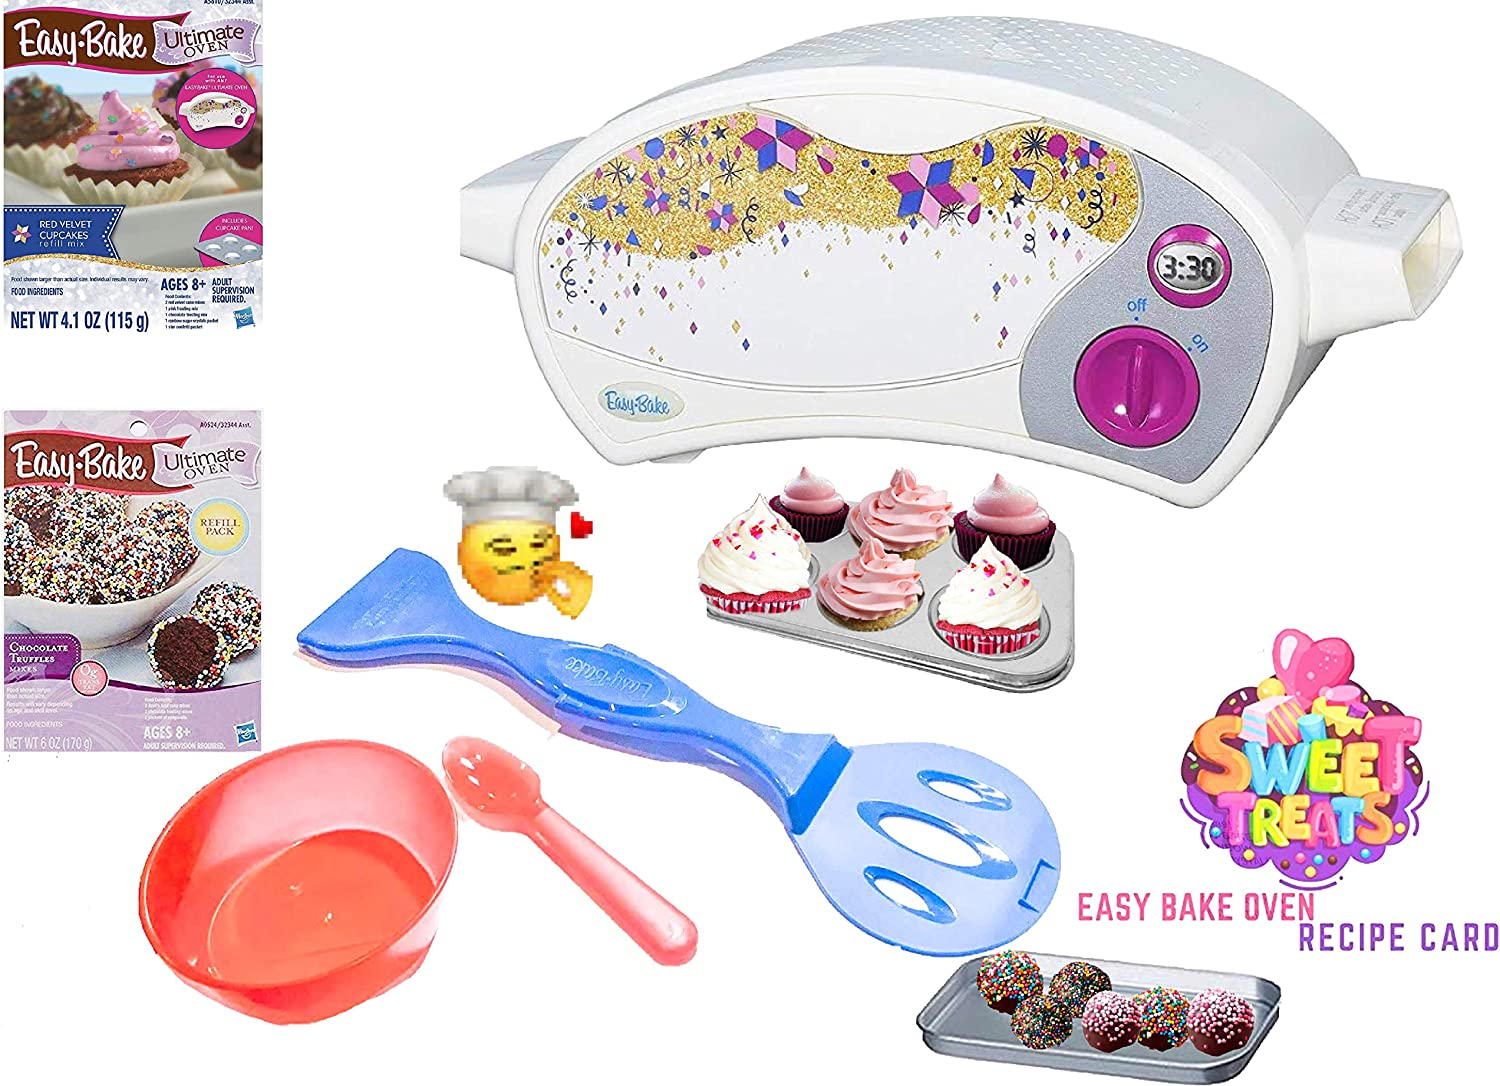 Easy Bake Ultimate Oven Baking Star Edition + 2 Oven Refill Mixes + 2 Sweet Treats Tasty Oven Recipes + Mixing Bowl and Spoon (5 Items Total) (Red)